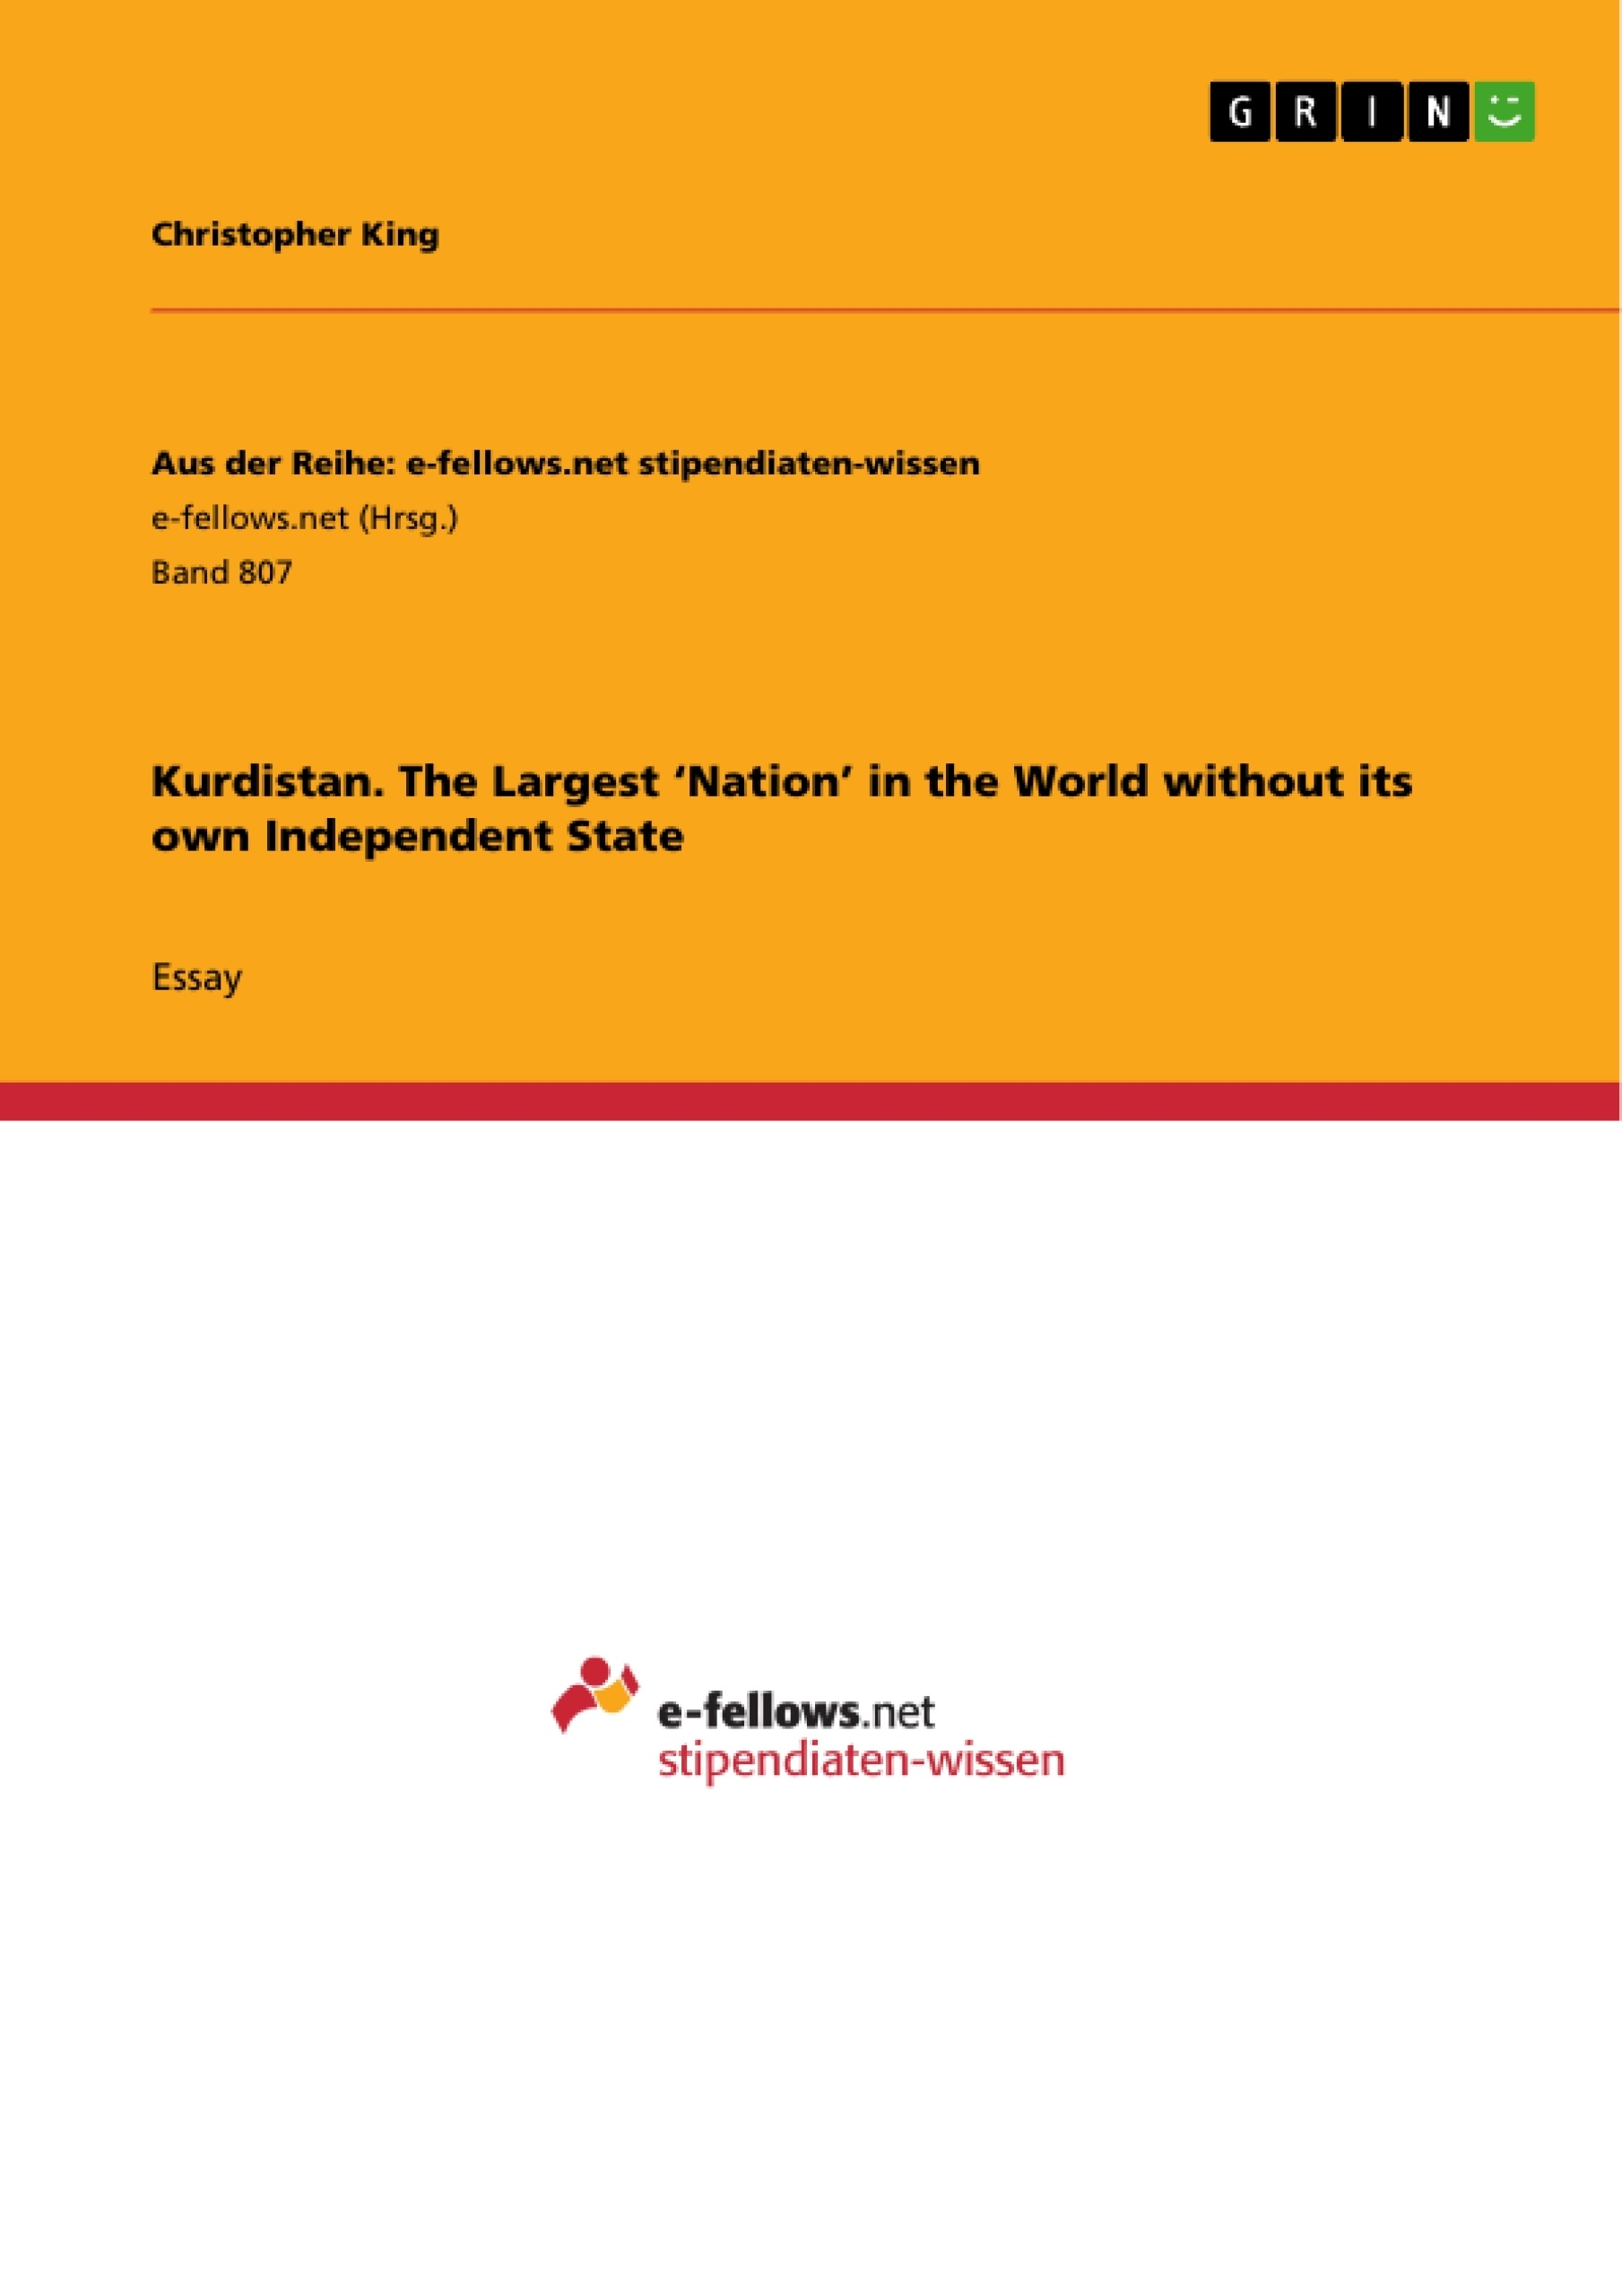 Title: Kurdistan. The Largest 'Nation' in the World without its own Independent State